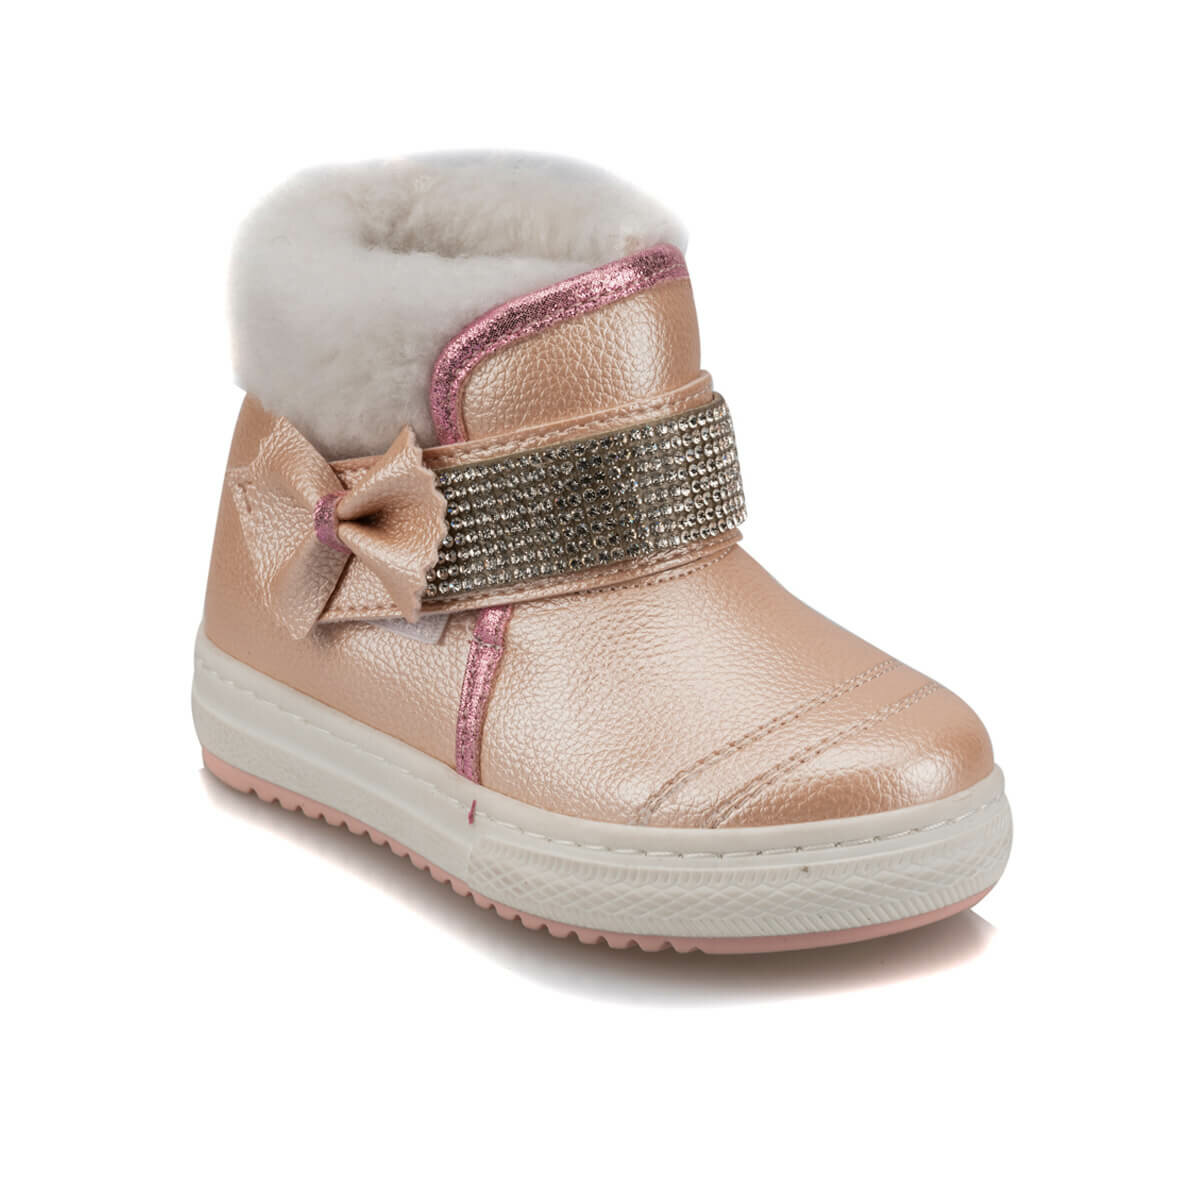 FLO 92.510722.B Powder Female Child Boots Polaris